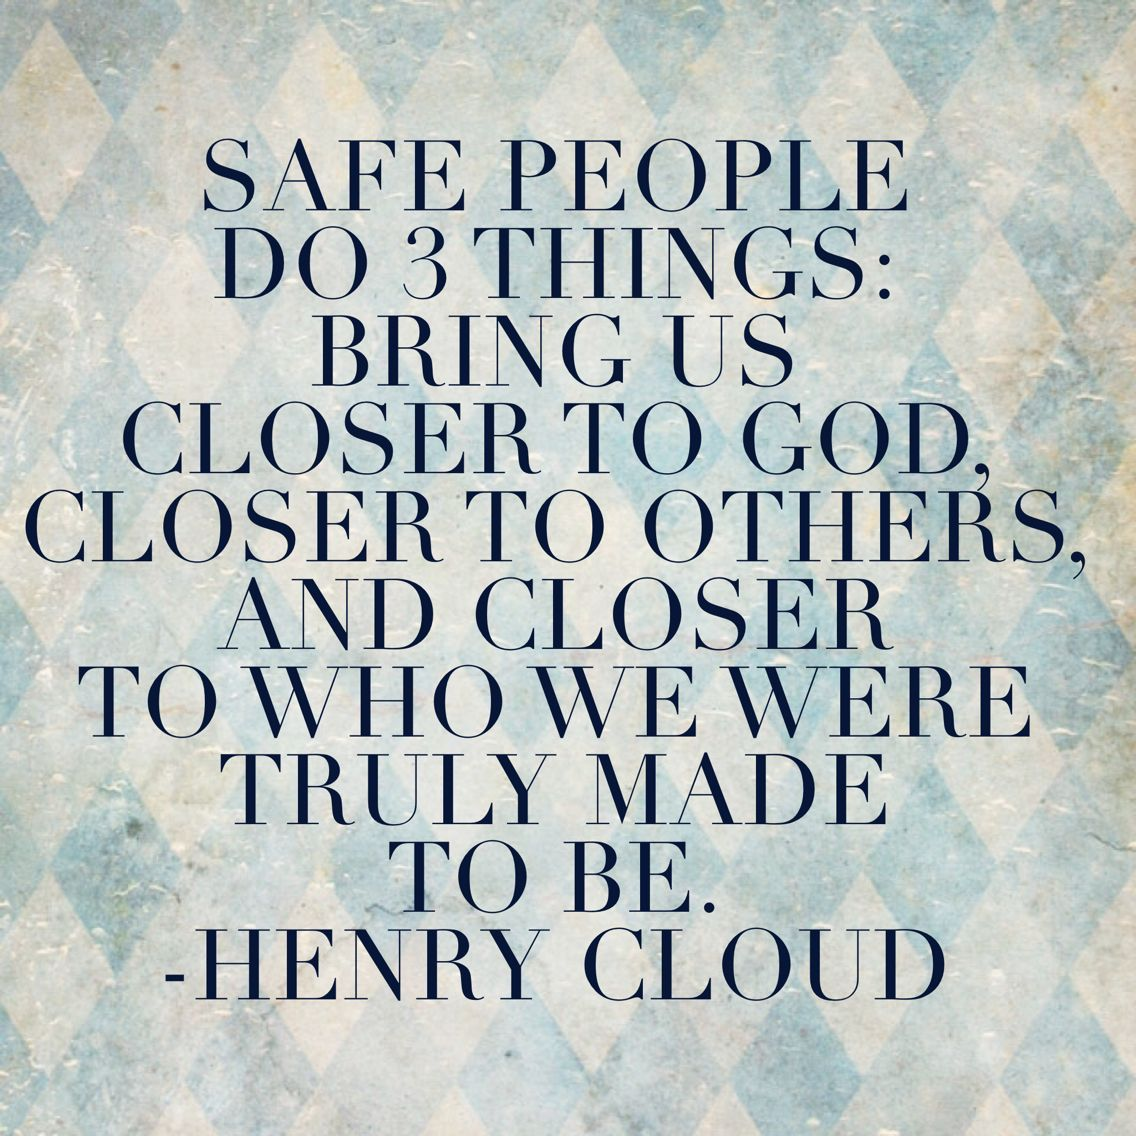 Cloud Quotes Safe People Do 3 Things Bring Us Closer To God Closer To Others